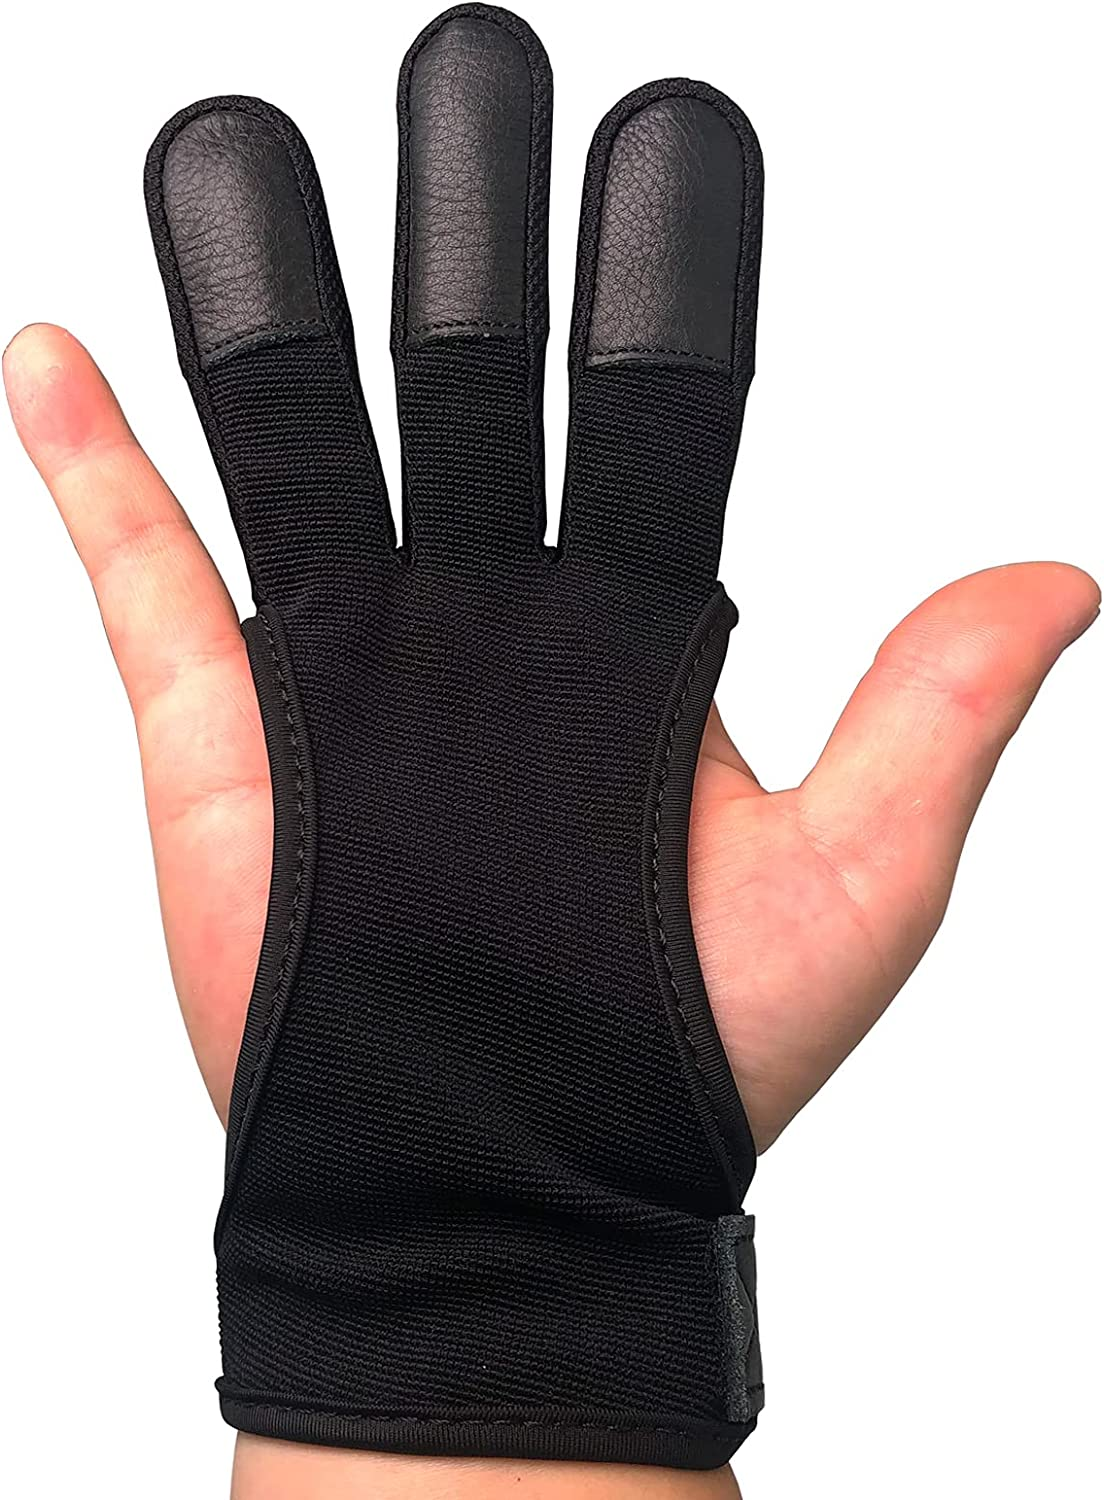 ArcheryMax Handmade Three Finger Protector for Youth Adult Beginner Shooting Hunting Leather Archery Gloves : Sports & Outdoors